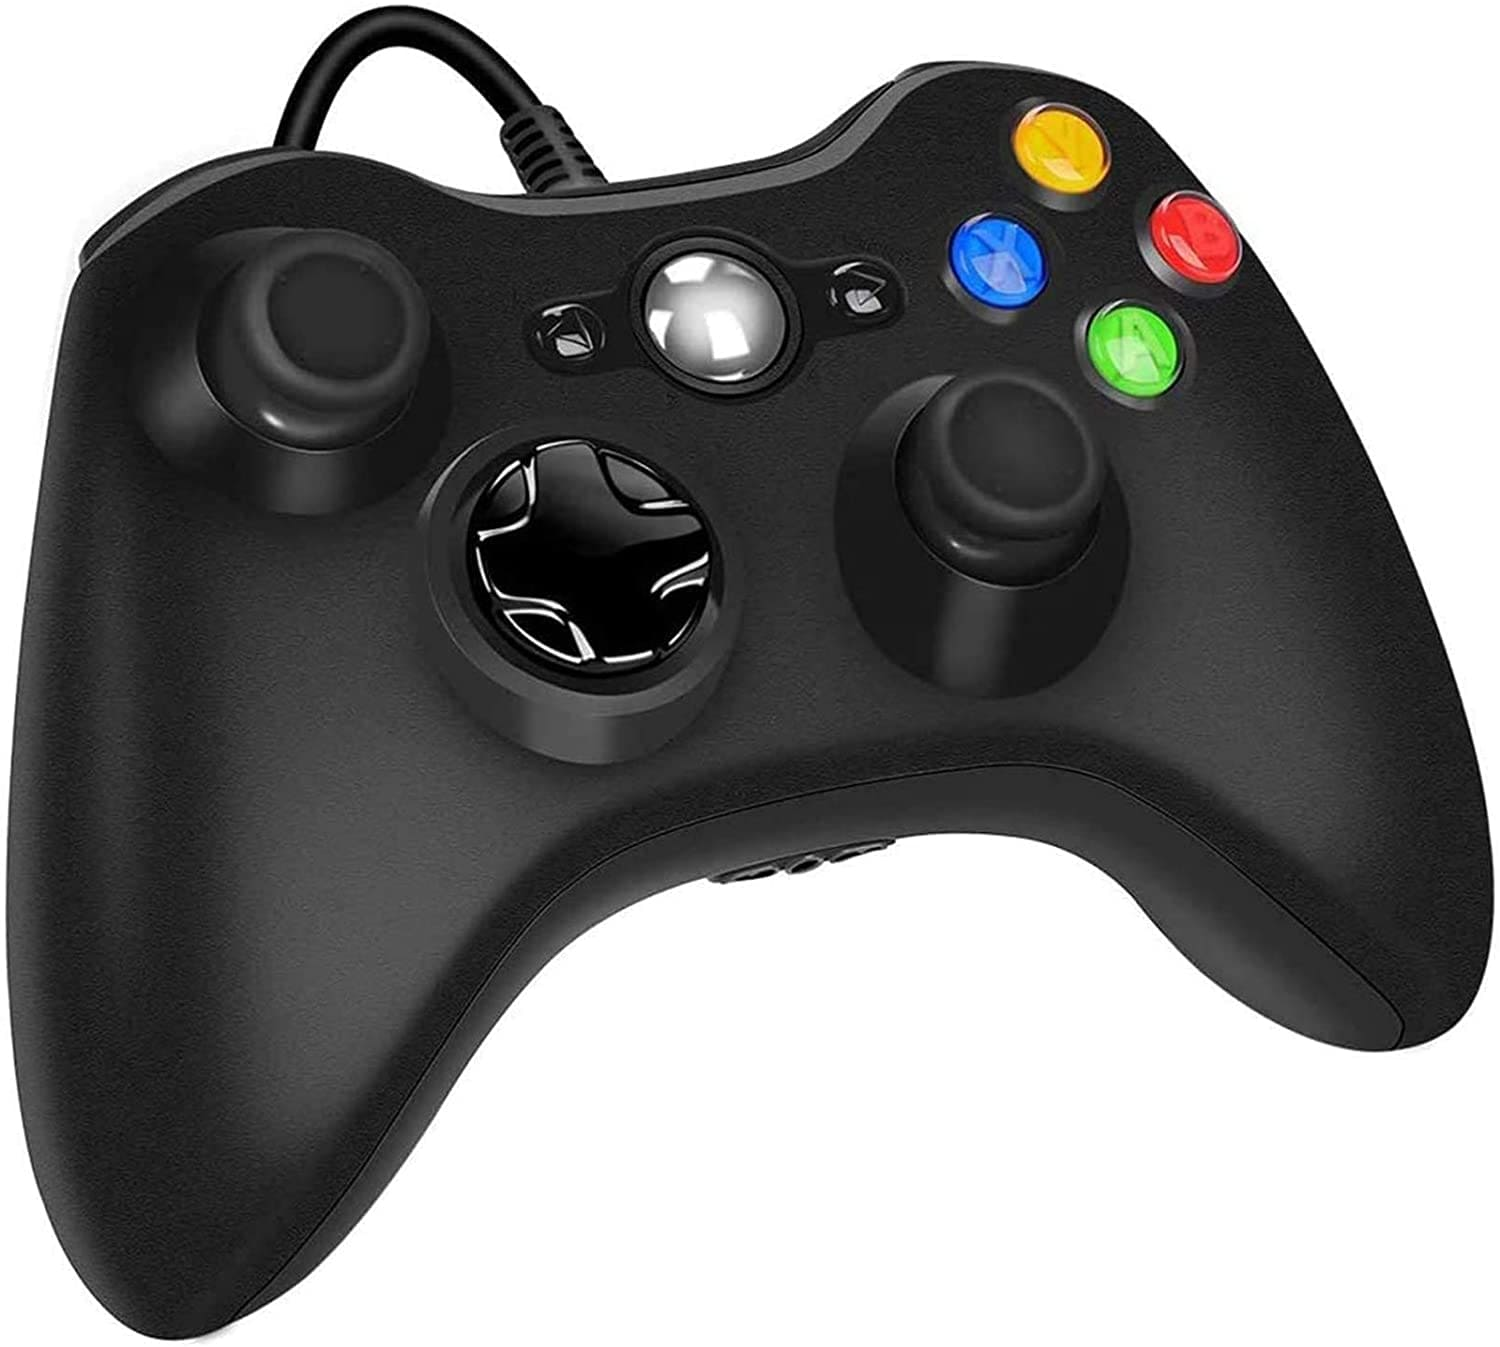 USB Wired Controller Game Accessories Gamepad Joypad Joystick For Microsoft XBOX360 Console PC Black - 1